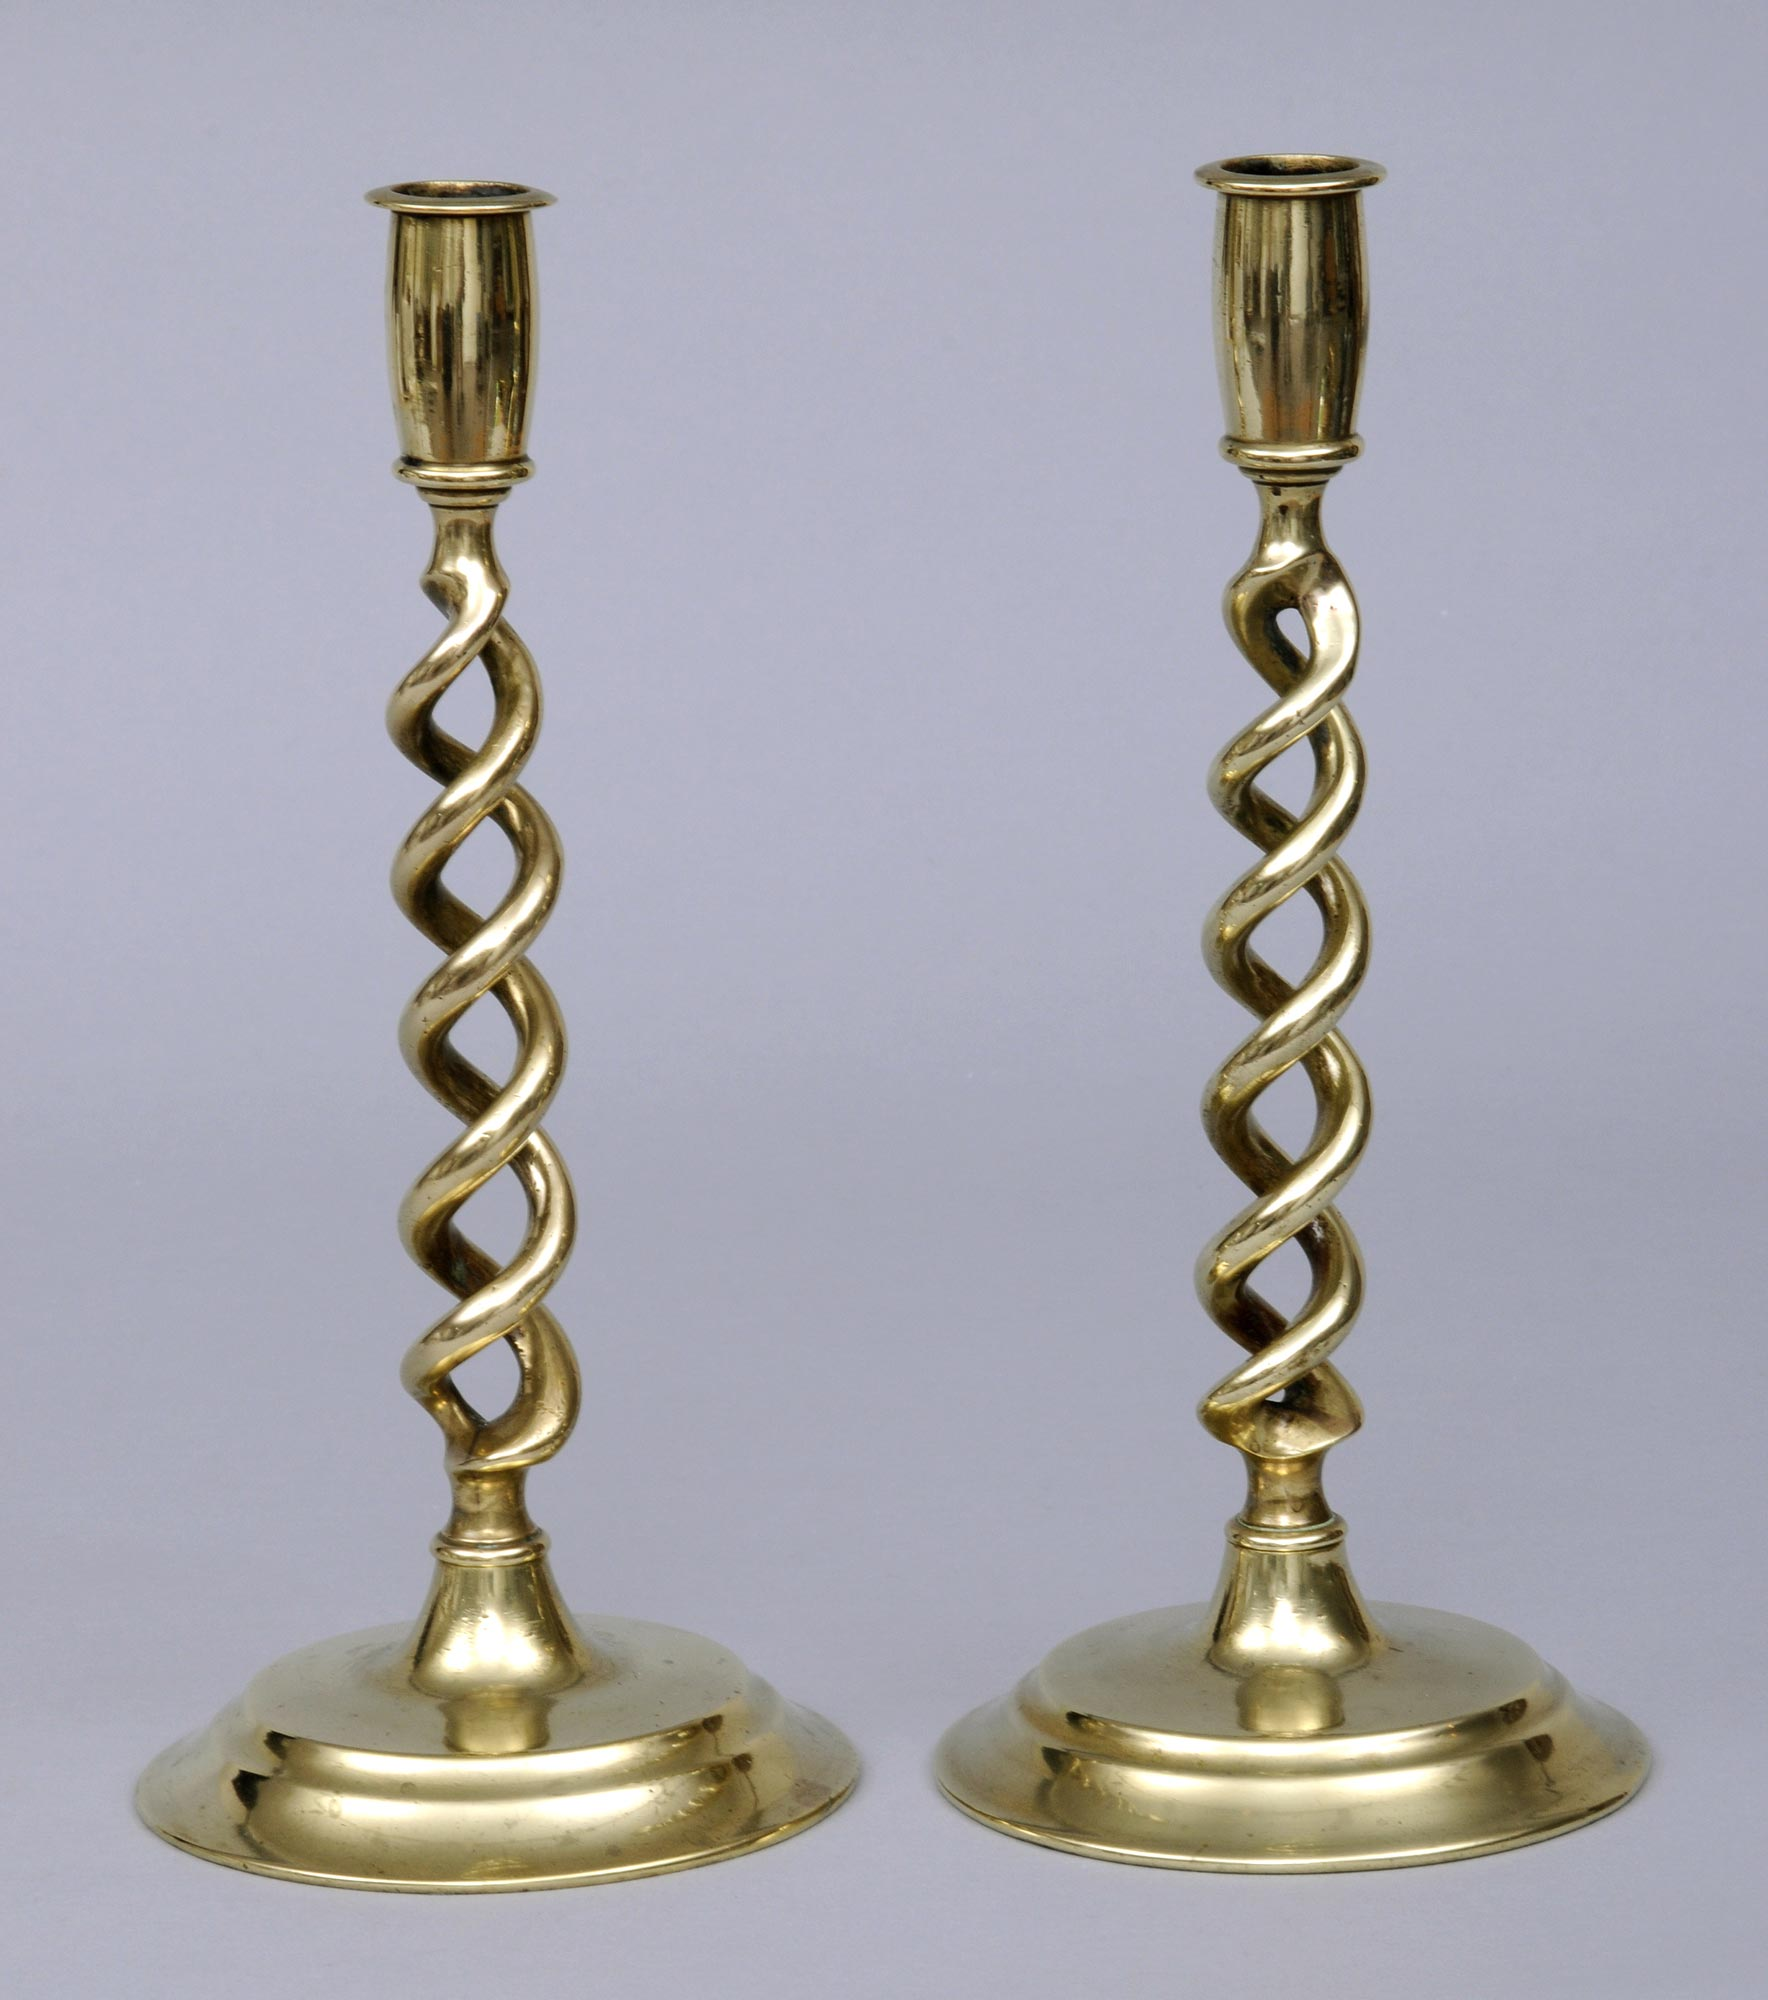 187 Product 187 Candlestick